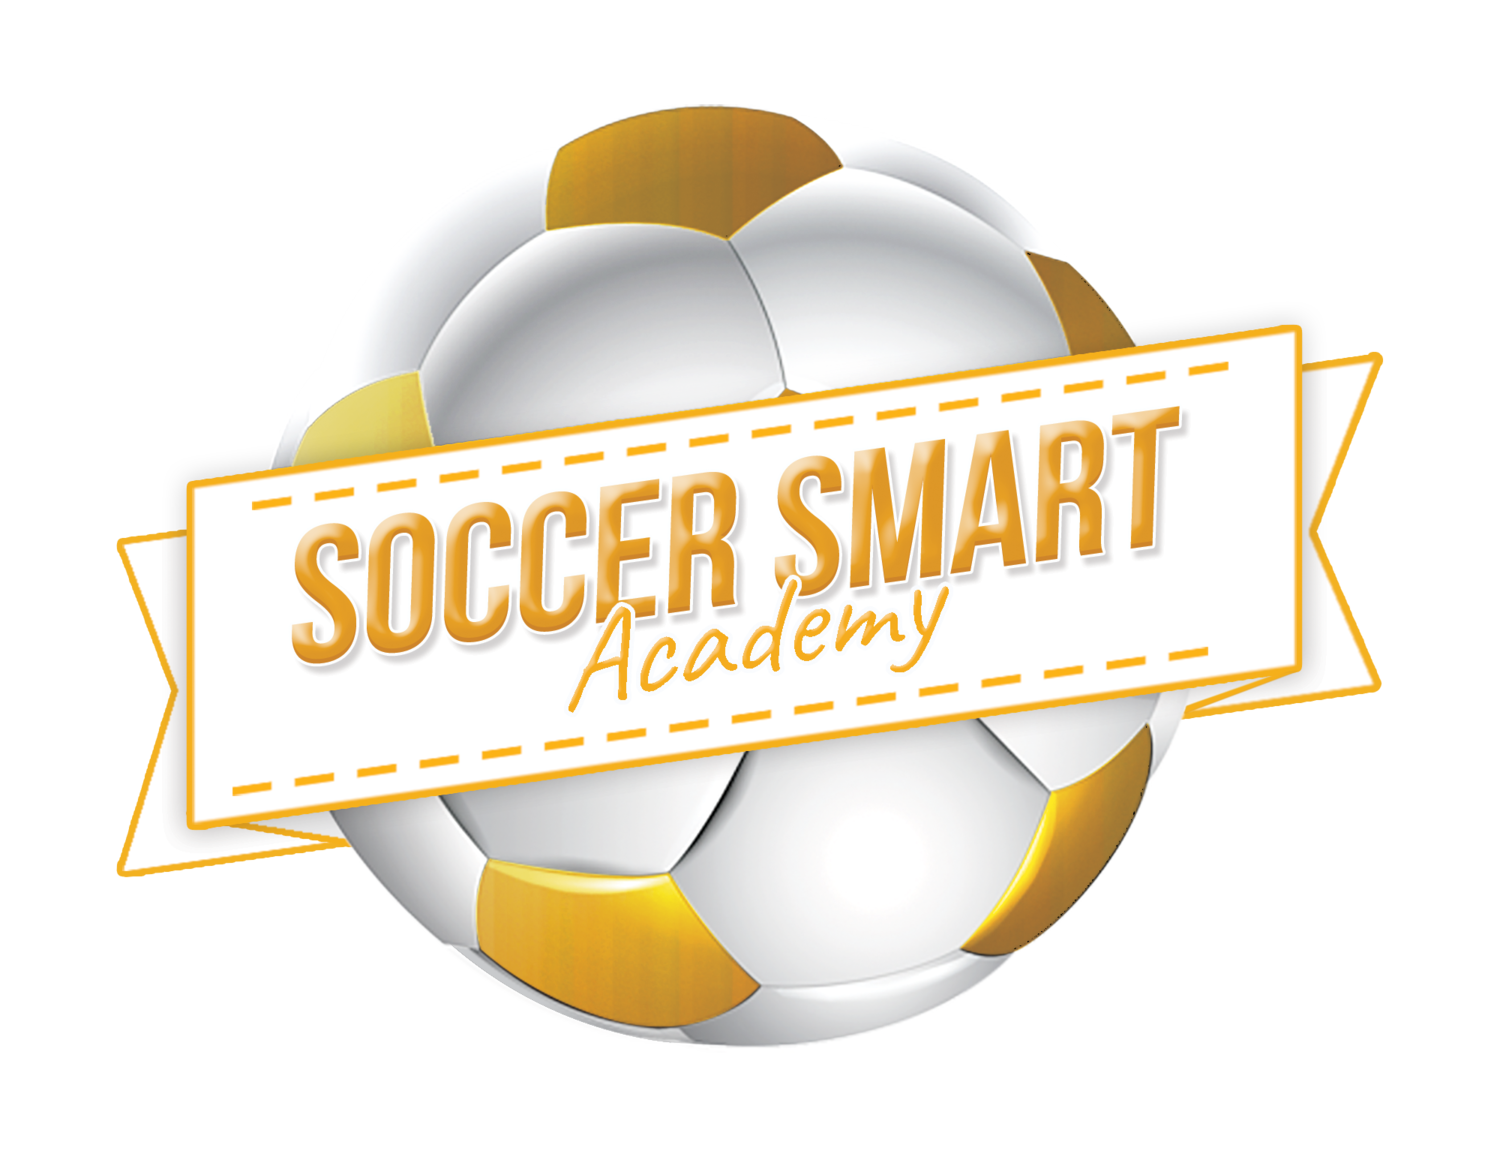 The Soccer Smart Academy - International Football Academy in Alicante